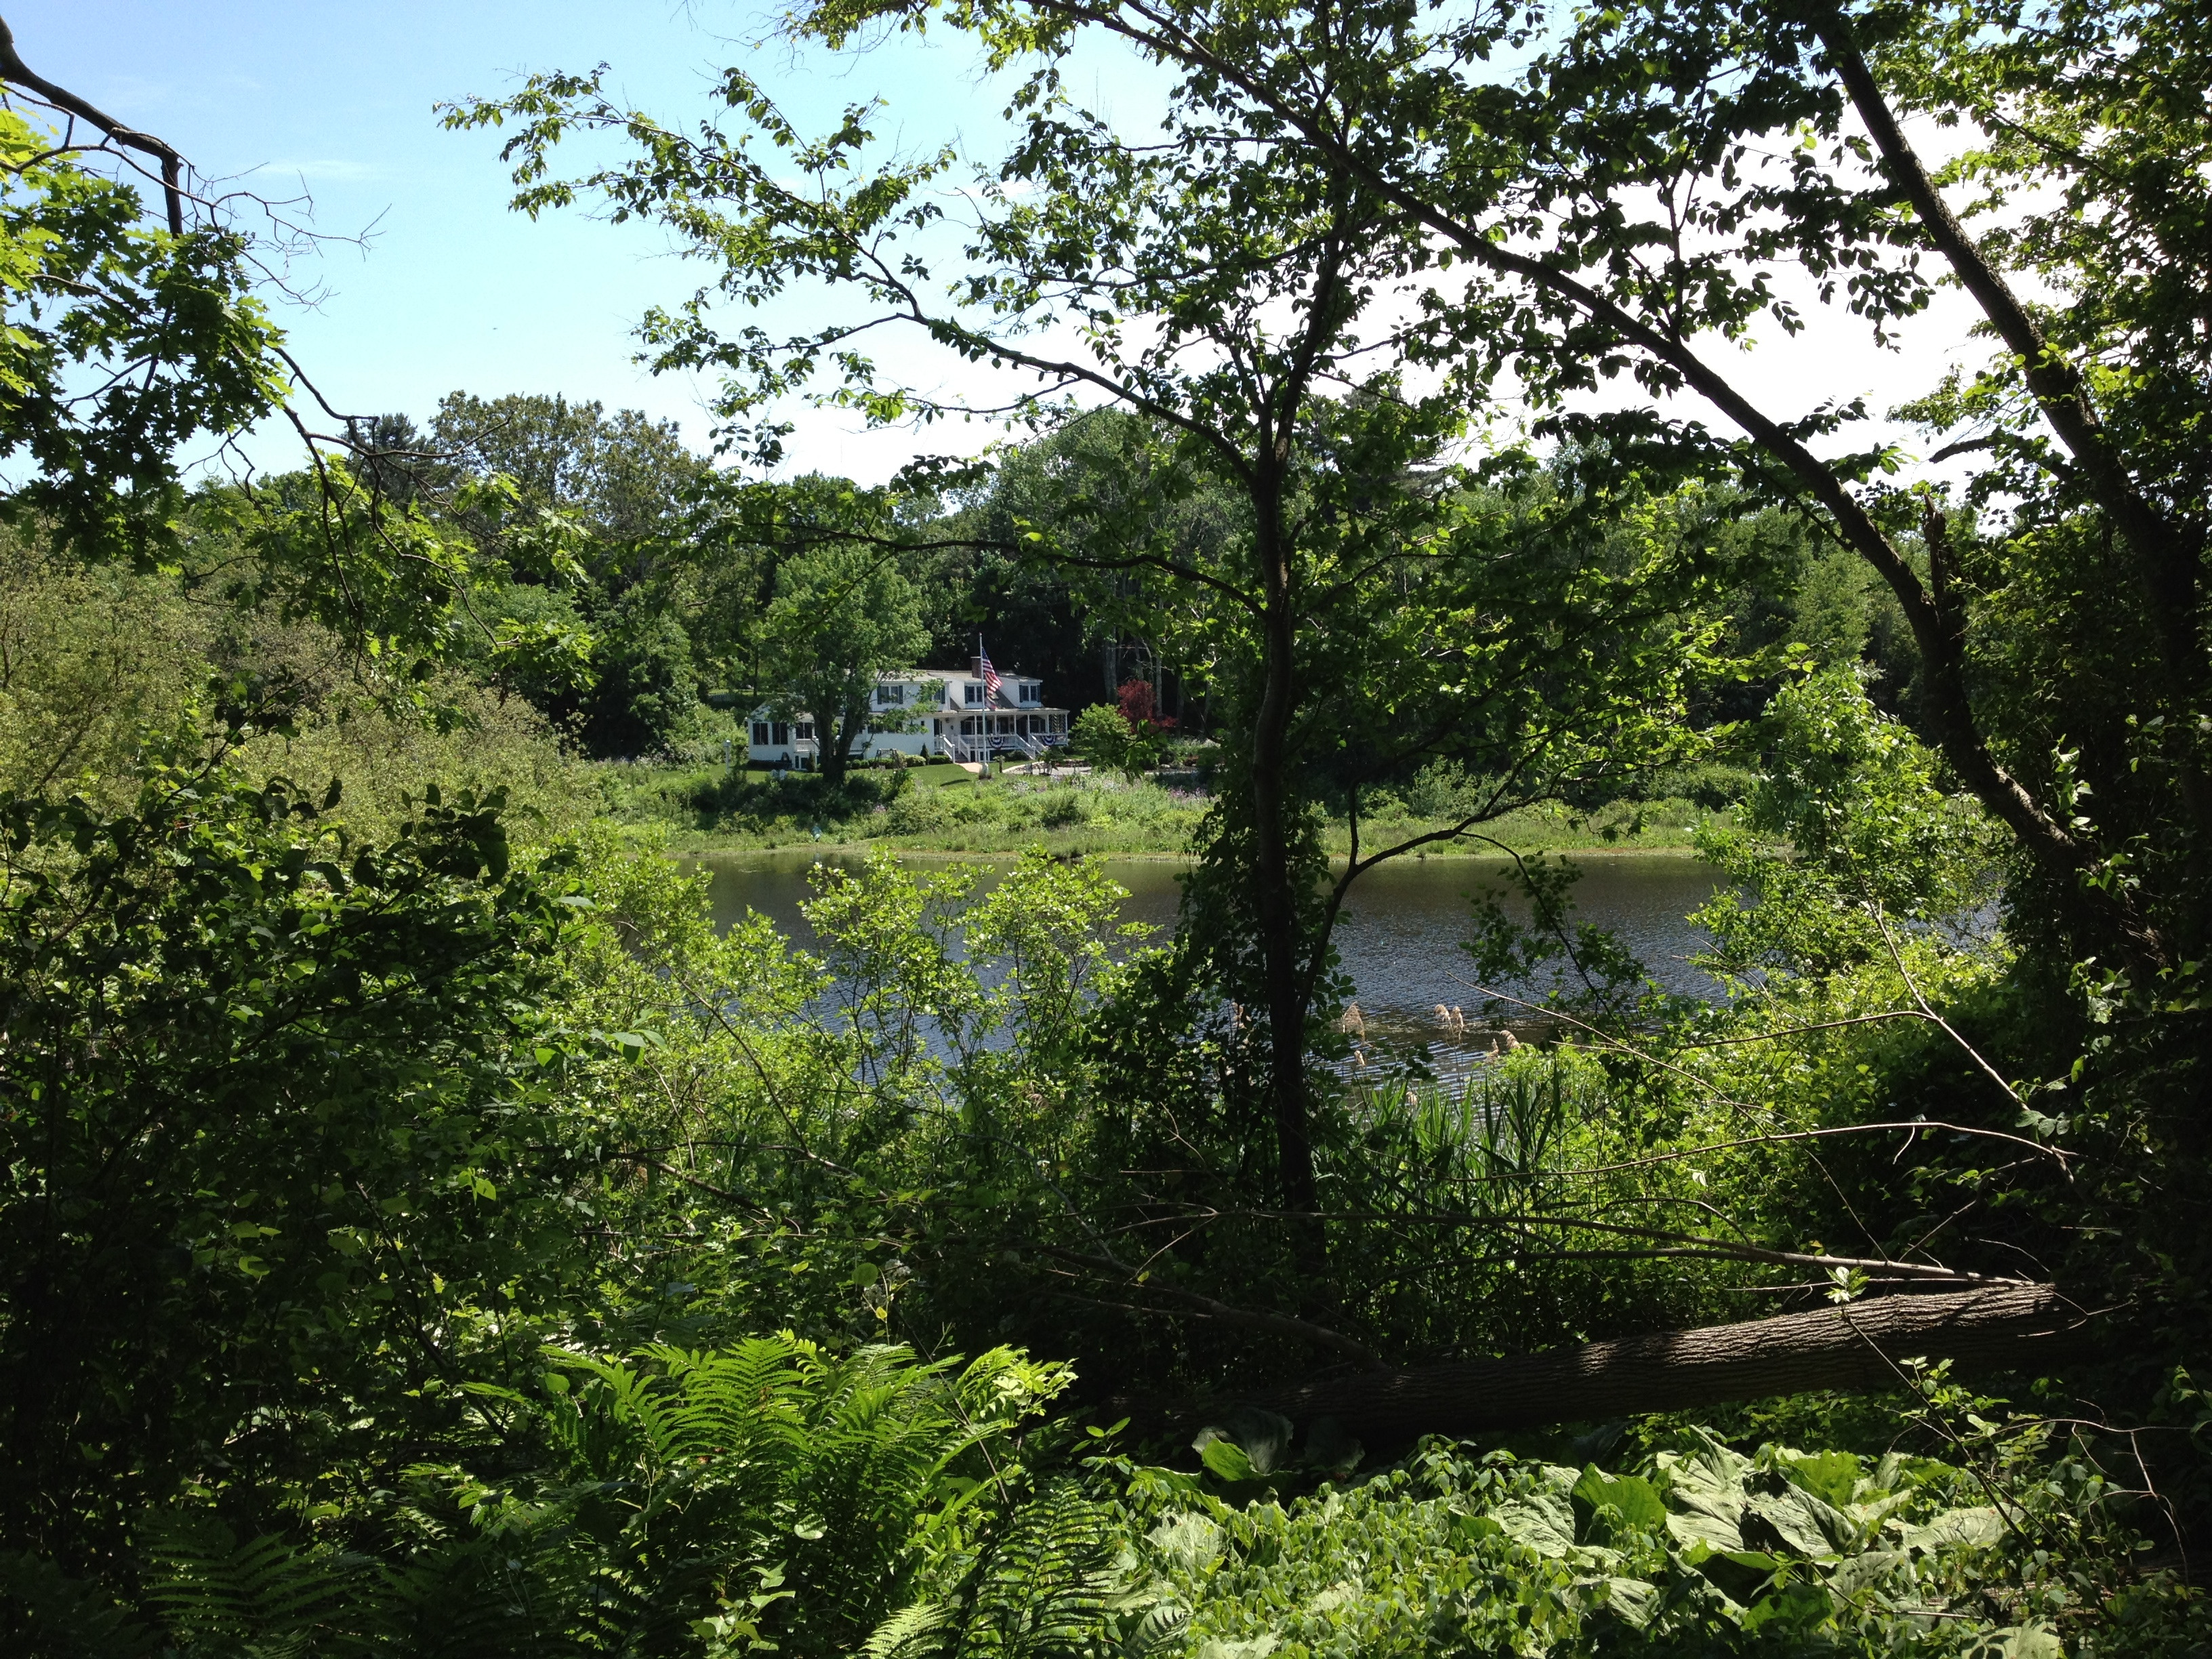 View across Plimpton Pond from the Endean Path in Walpole, MA